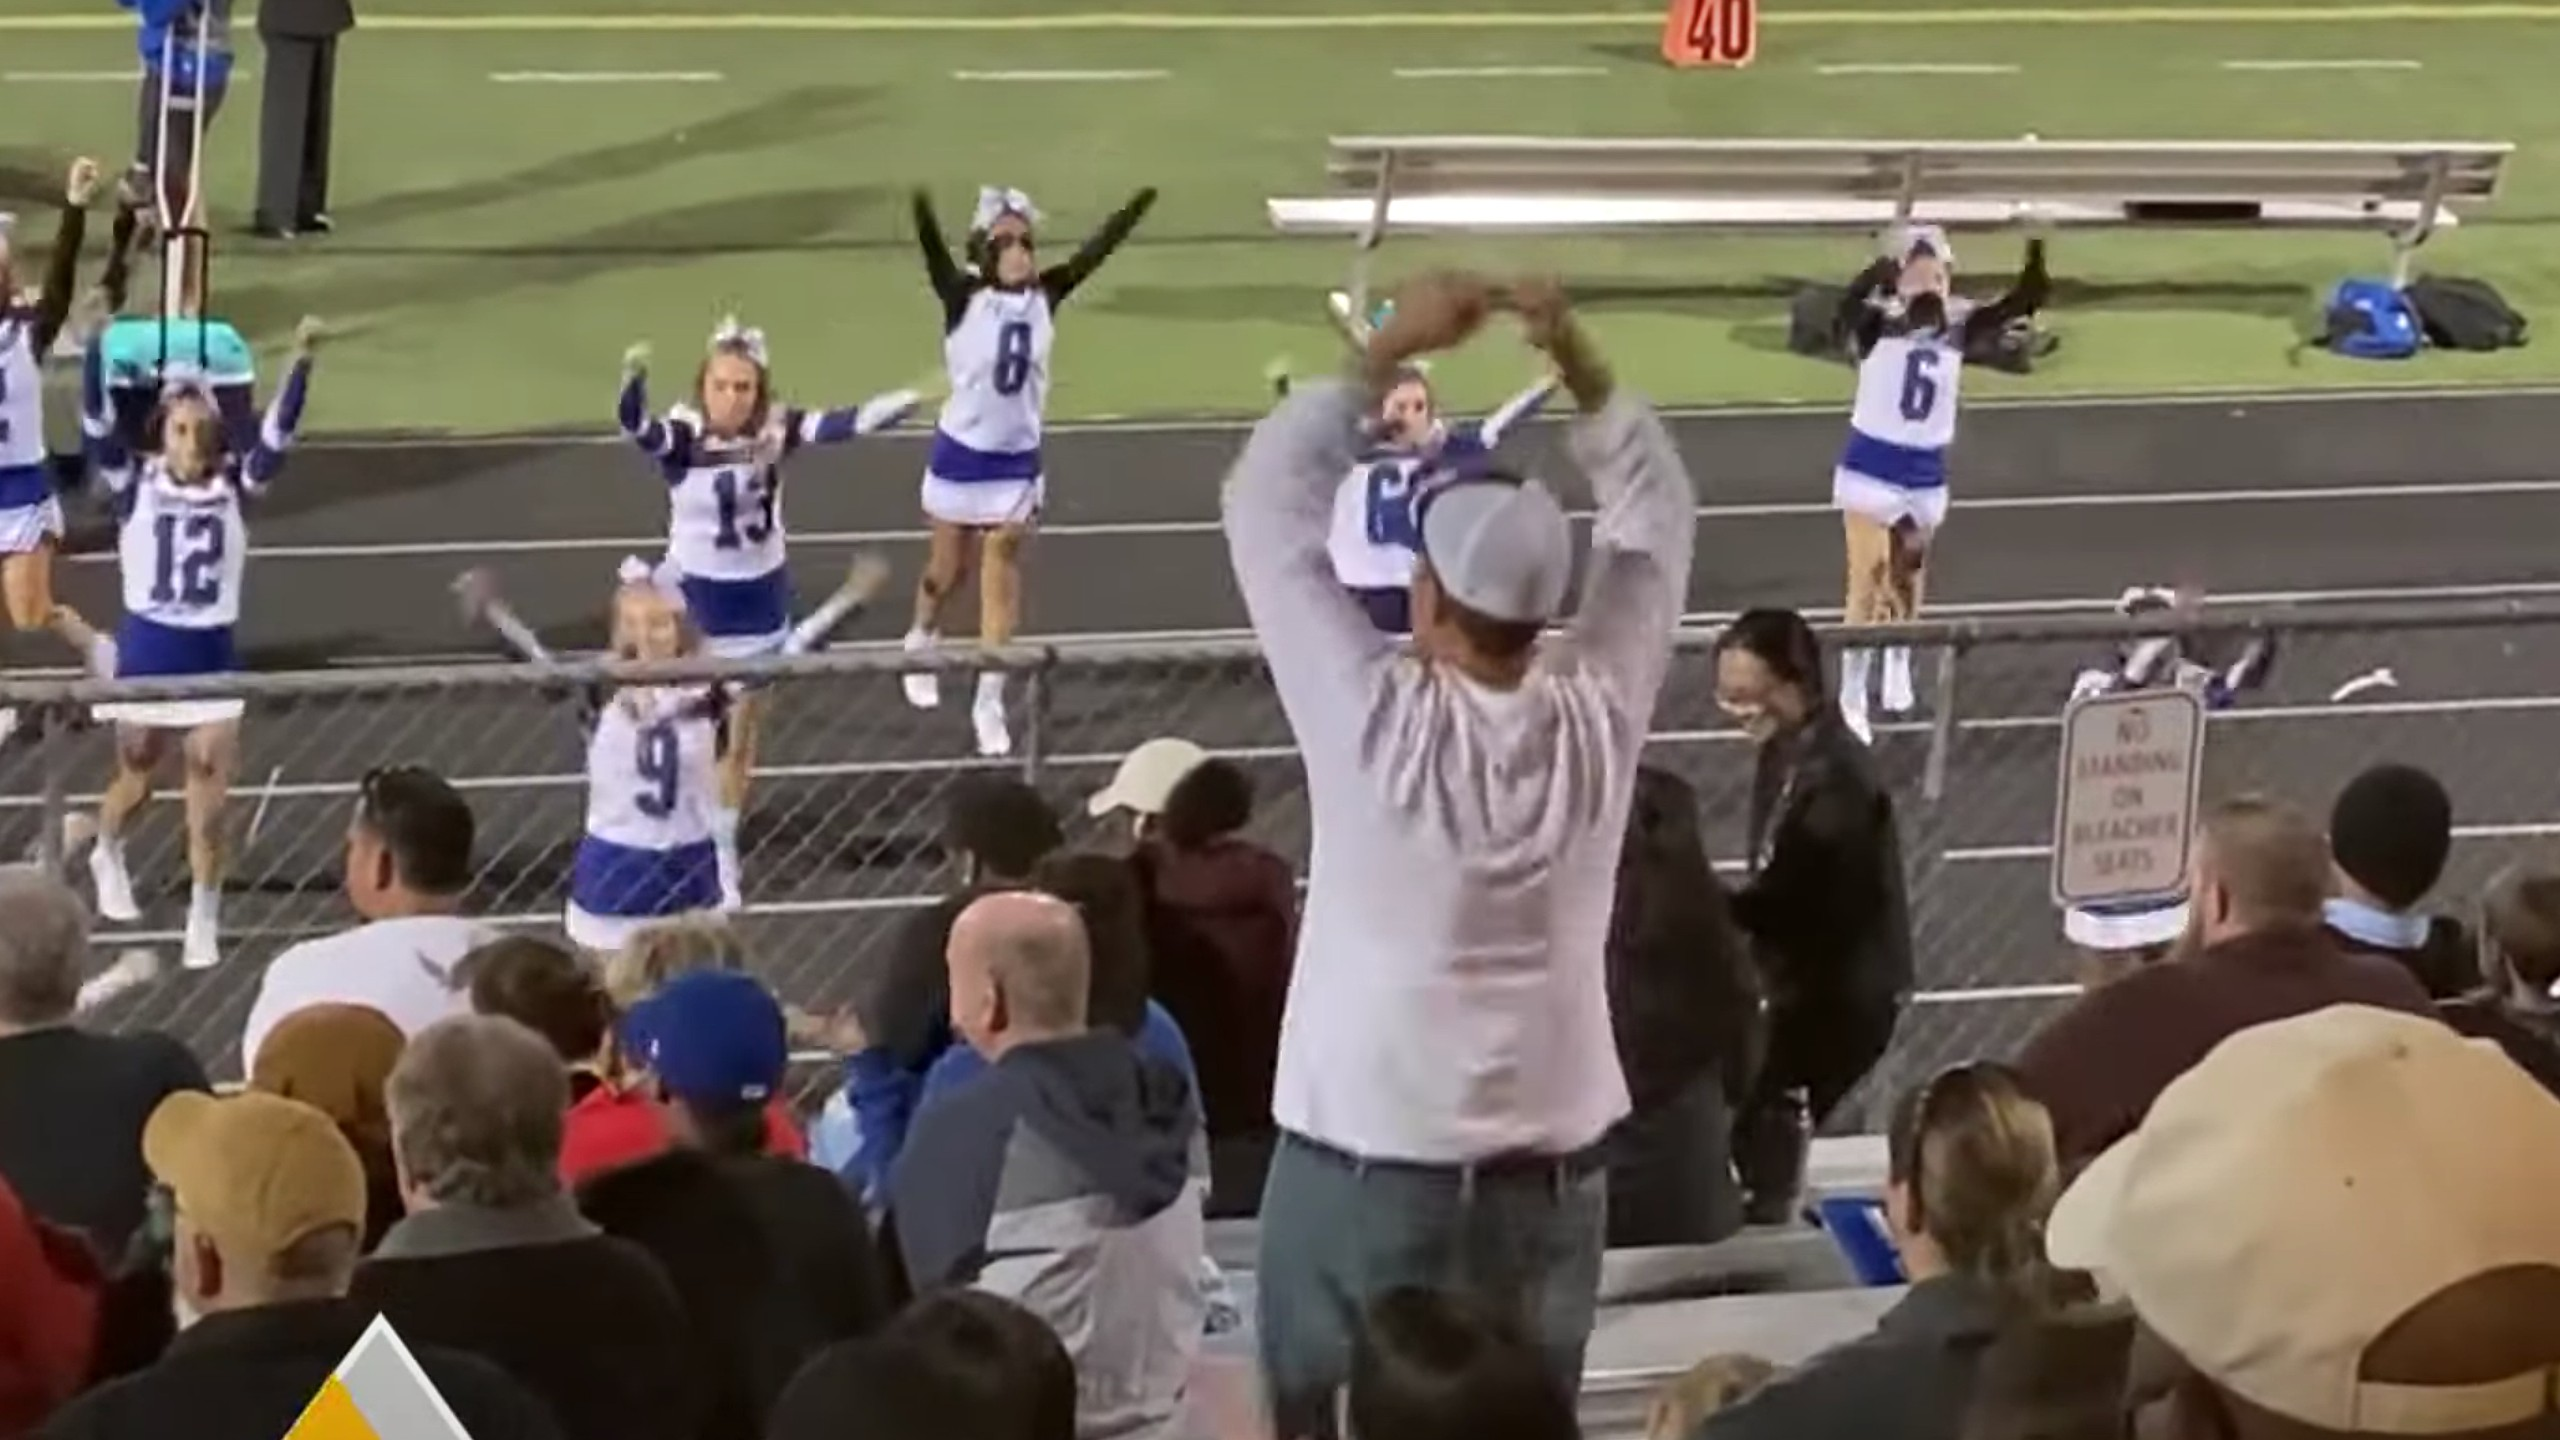 Cheer dad goes viral for unique support of his daughter's cheerleading